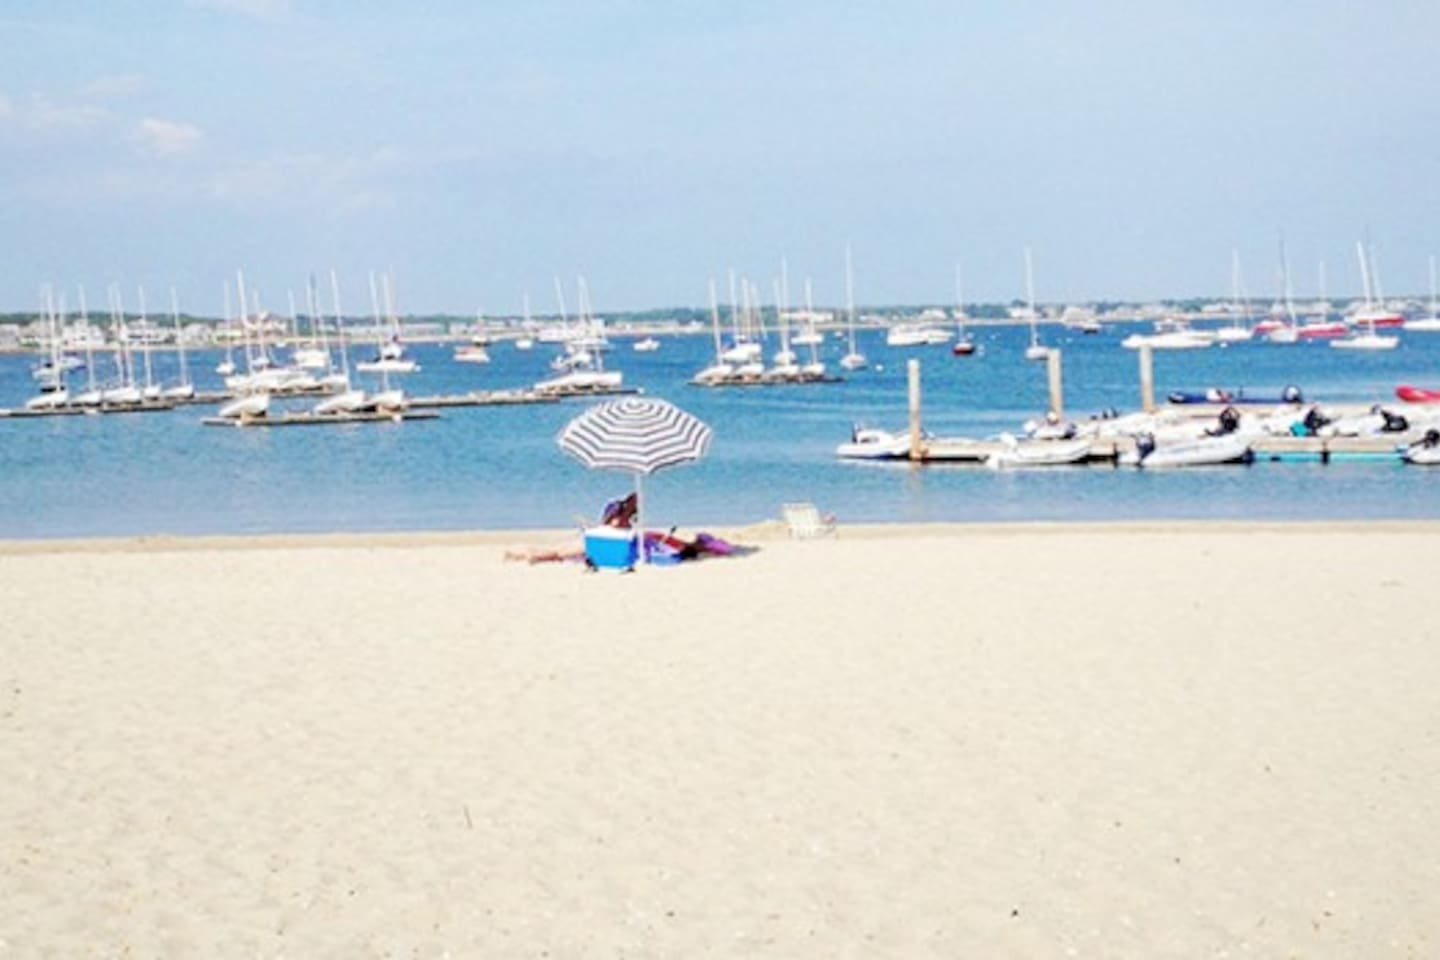 Hyannis Yatch Club - next to the Private Beach